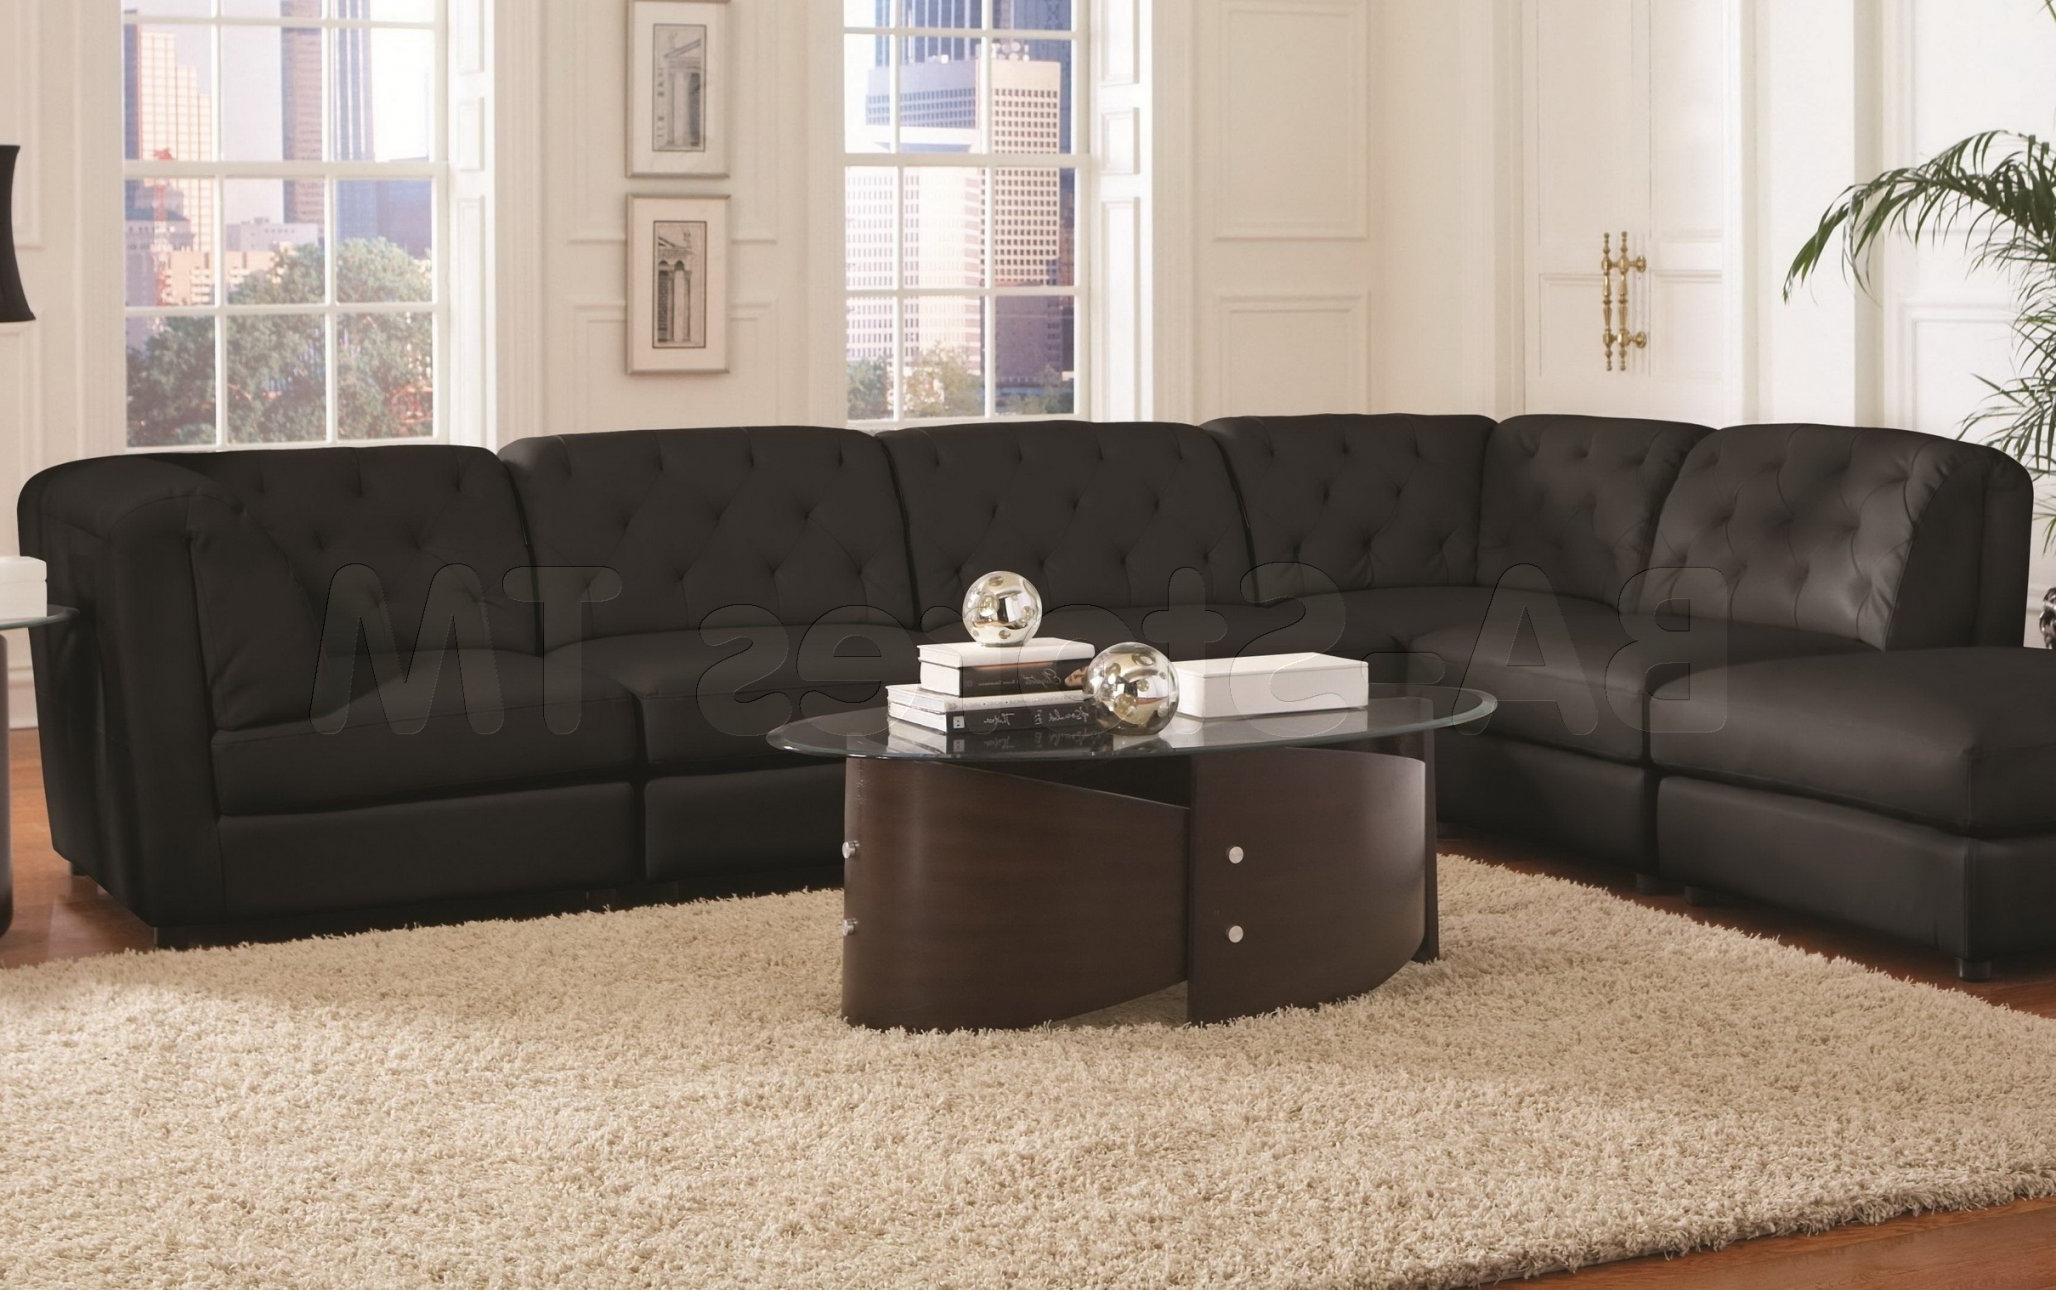 Quinn Black Bonded Leather Match Modular Sectional Sofa Throughout In Widely Used Leather Modular Sectional Sofas (Gallery 15 of 20)